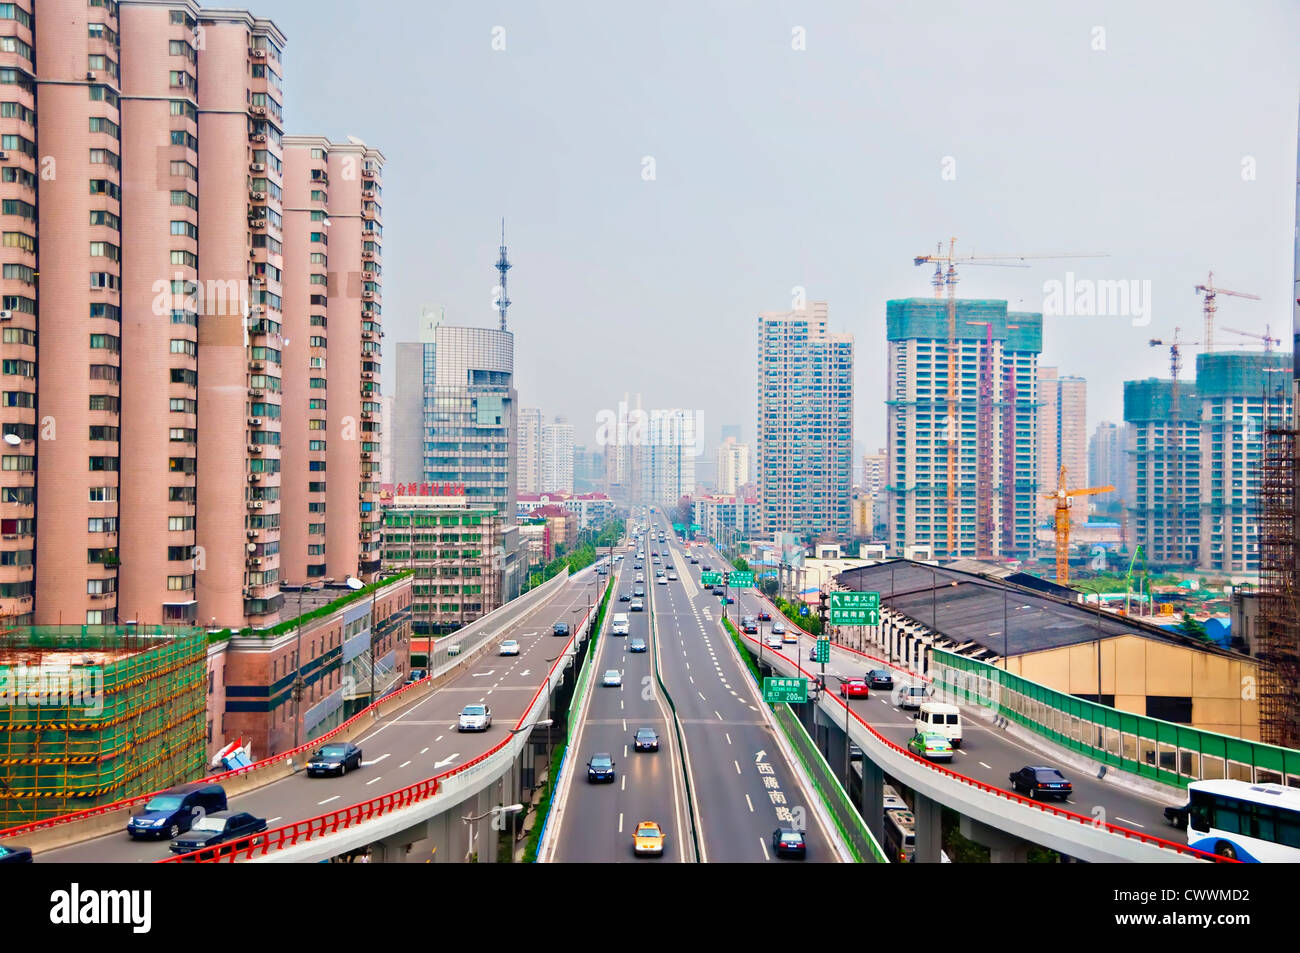 SHANGHAI, AUGUST 19, 2009: Early morning smog in the highly urbanized city of Shanghai, China on August 19, 2009. - Stock Image